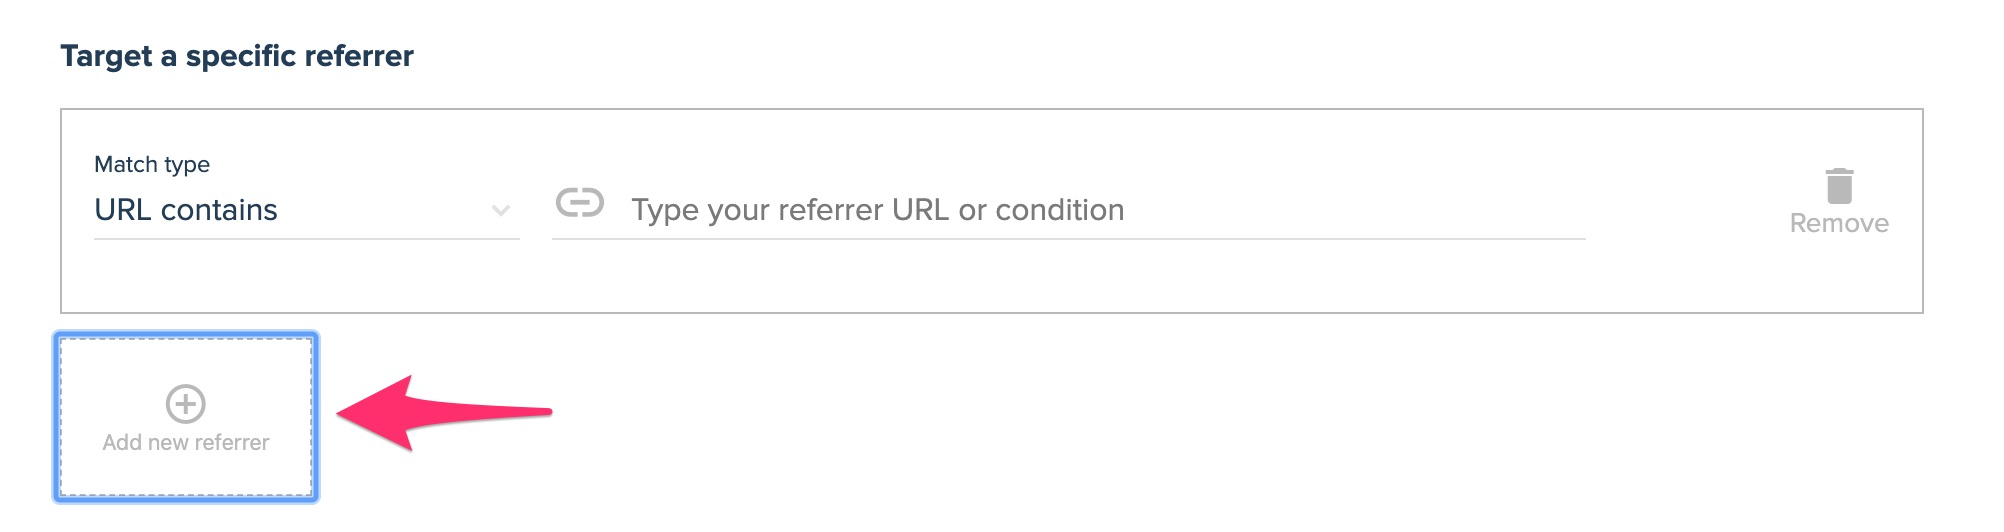 target a specific referrer